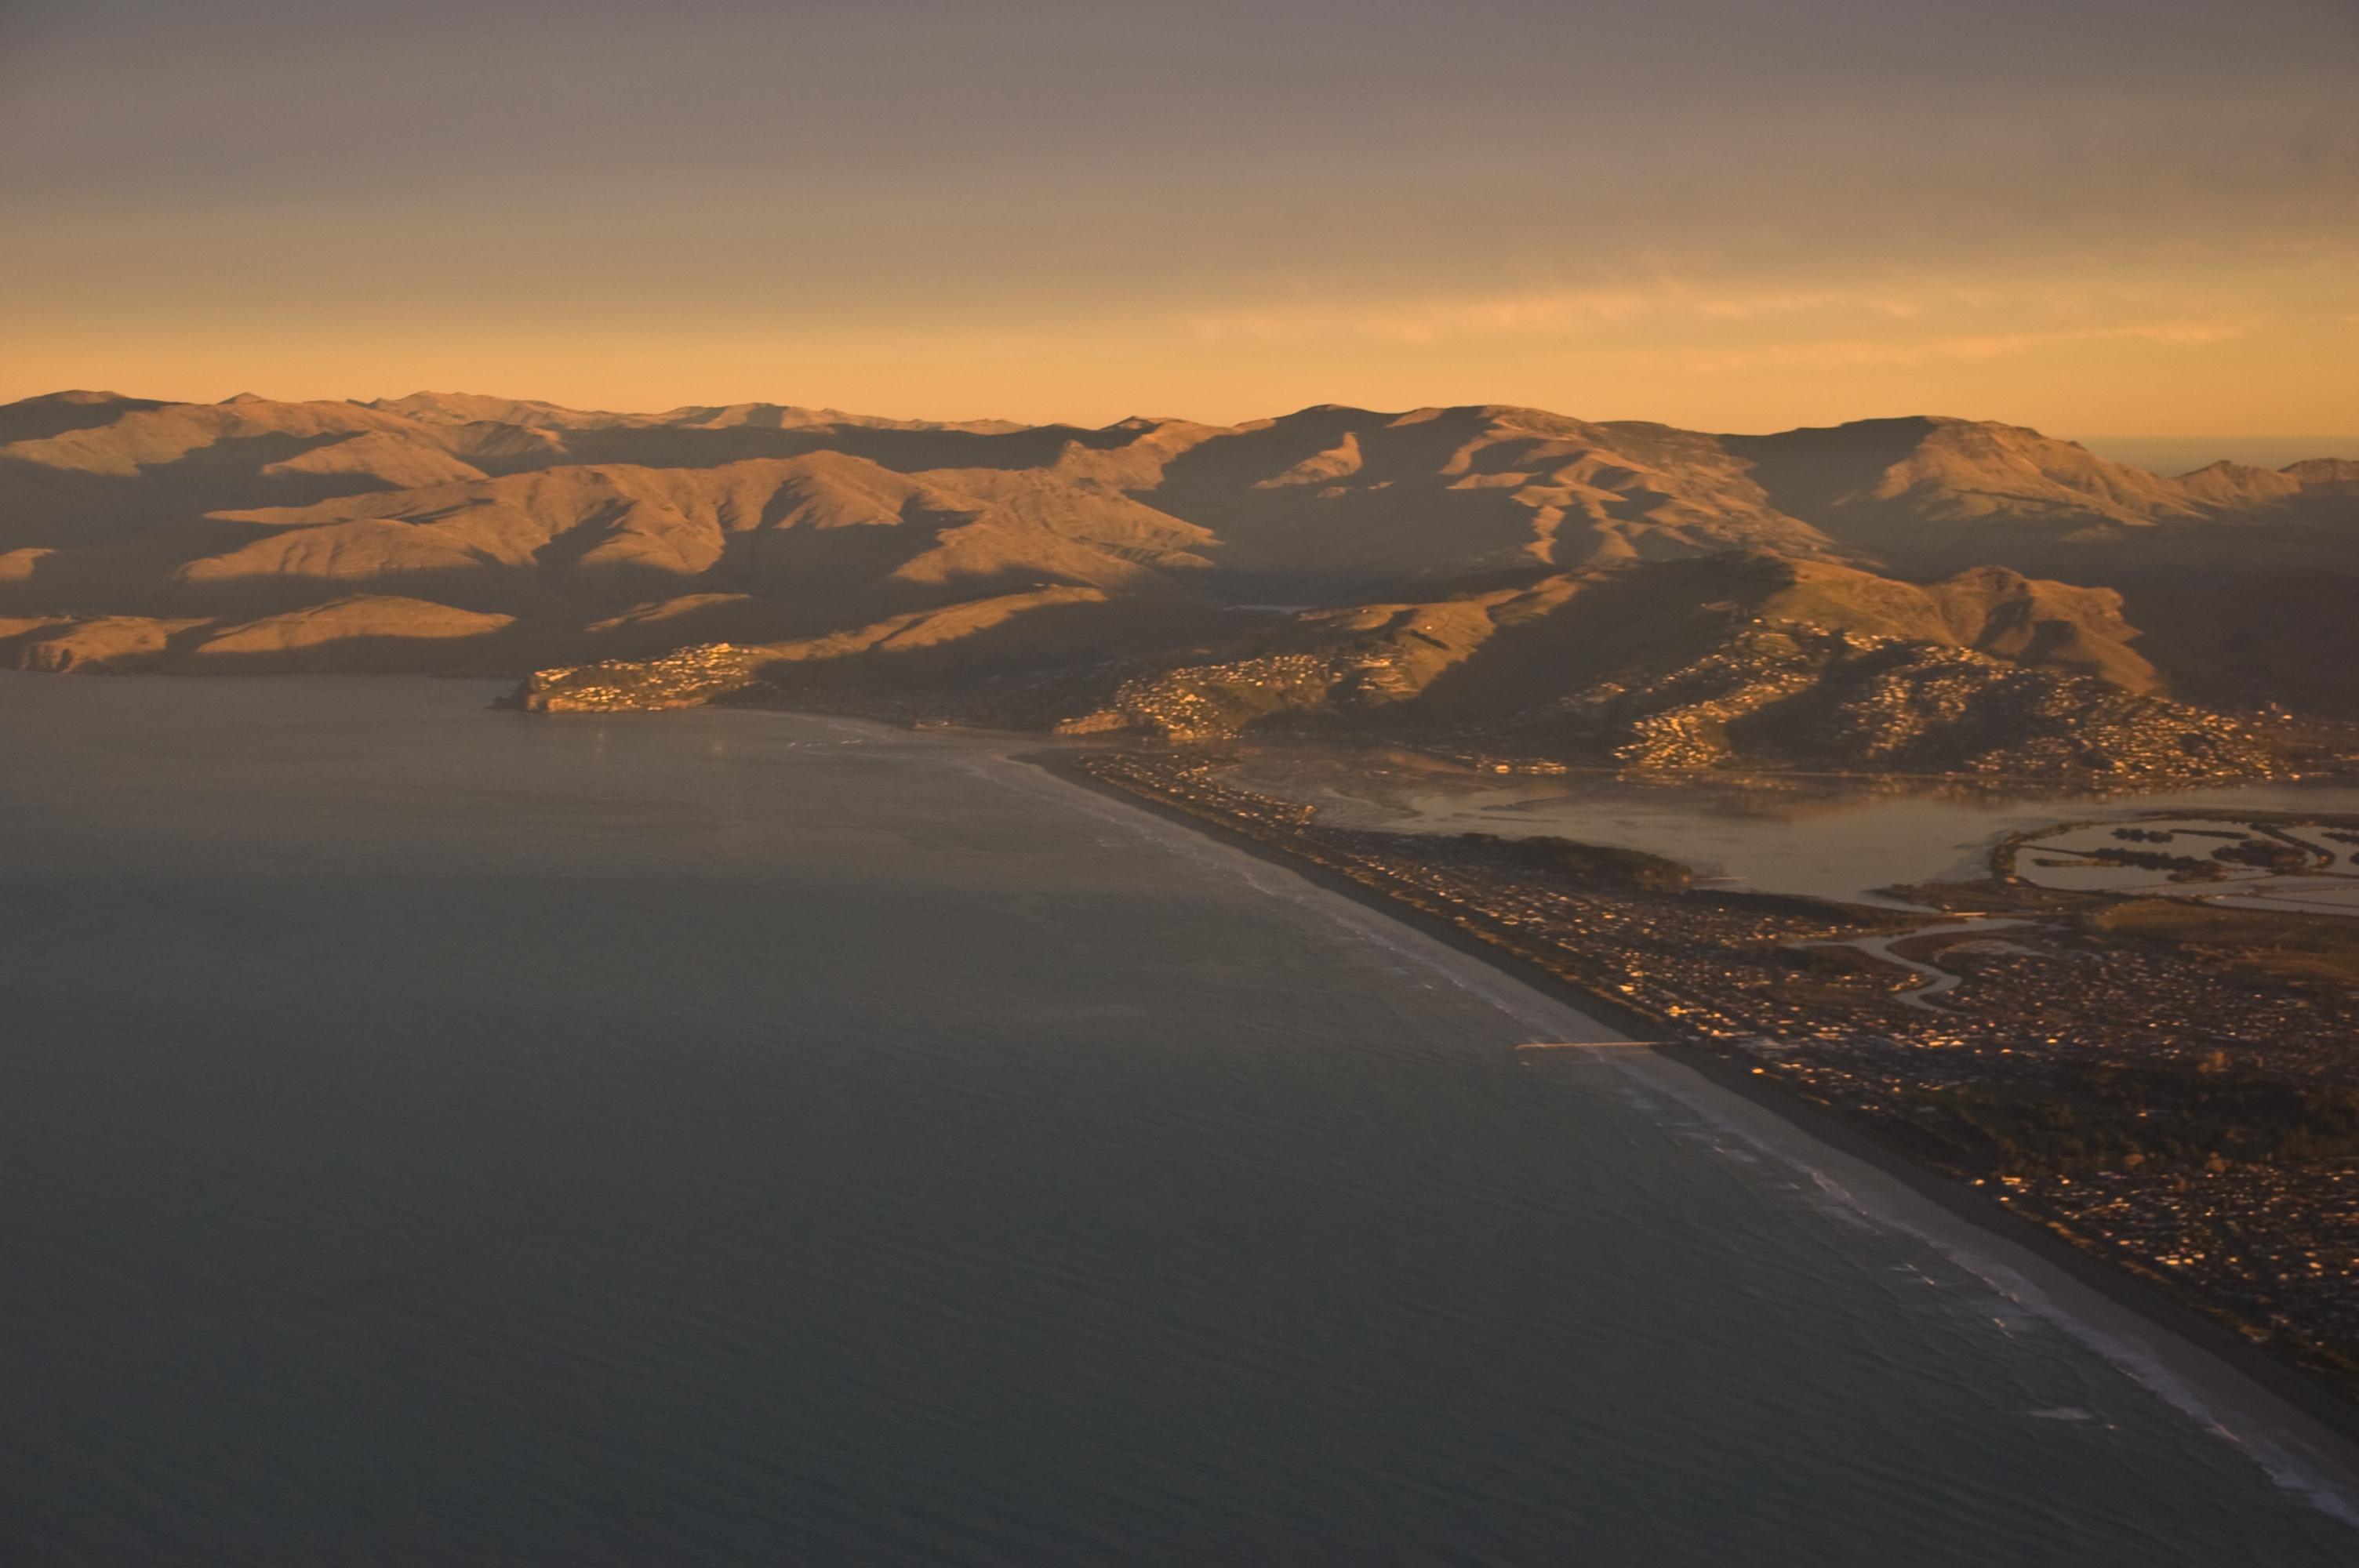 Christchurch Video: File:New Brighton And The Port Hills, Christchurch, New